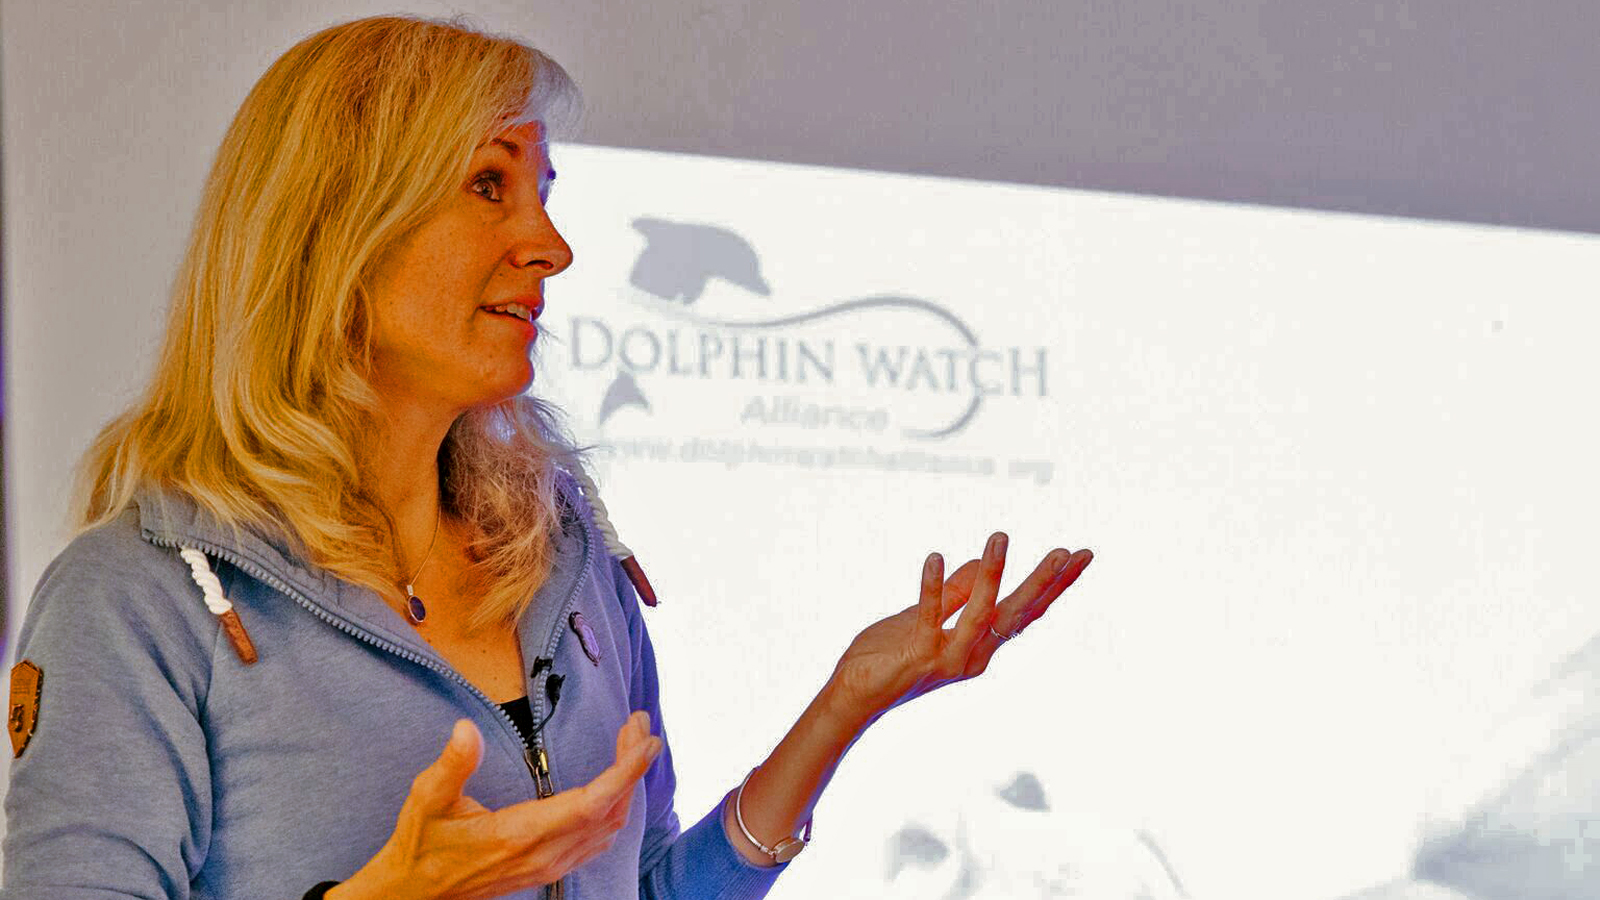 Presentation about dolphin research and conservation efforts